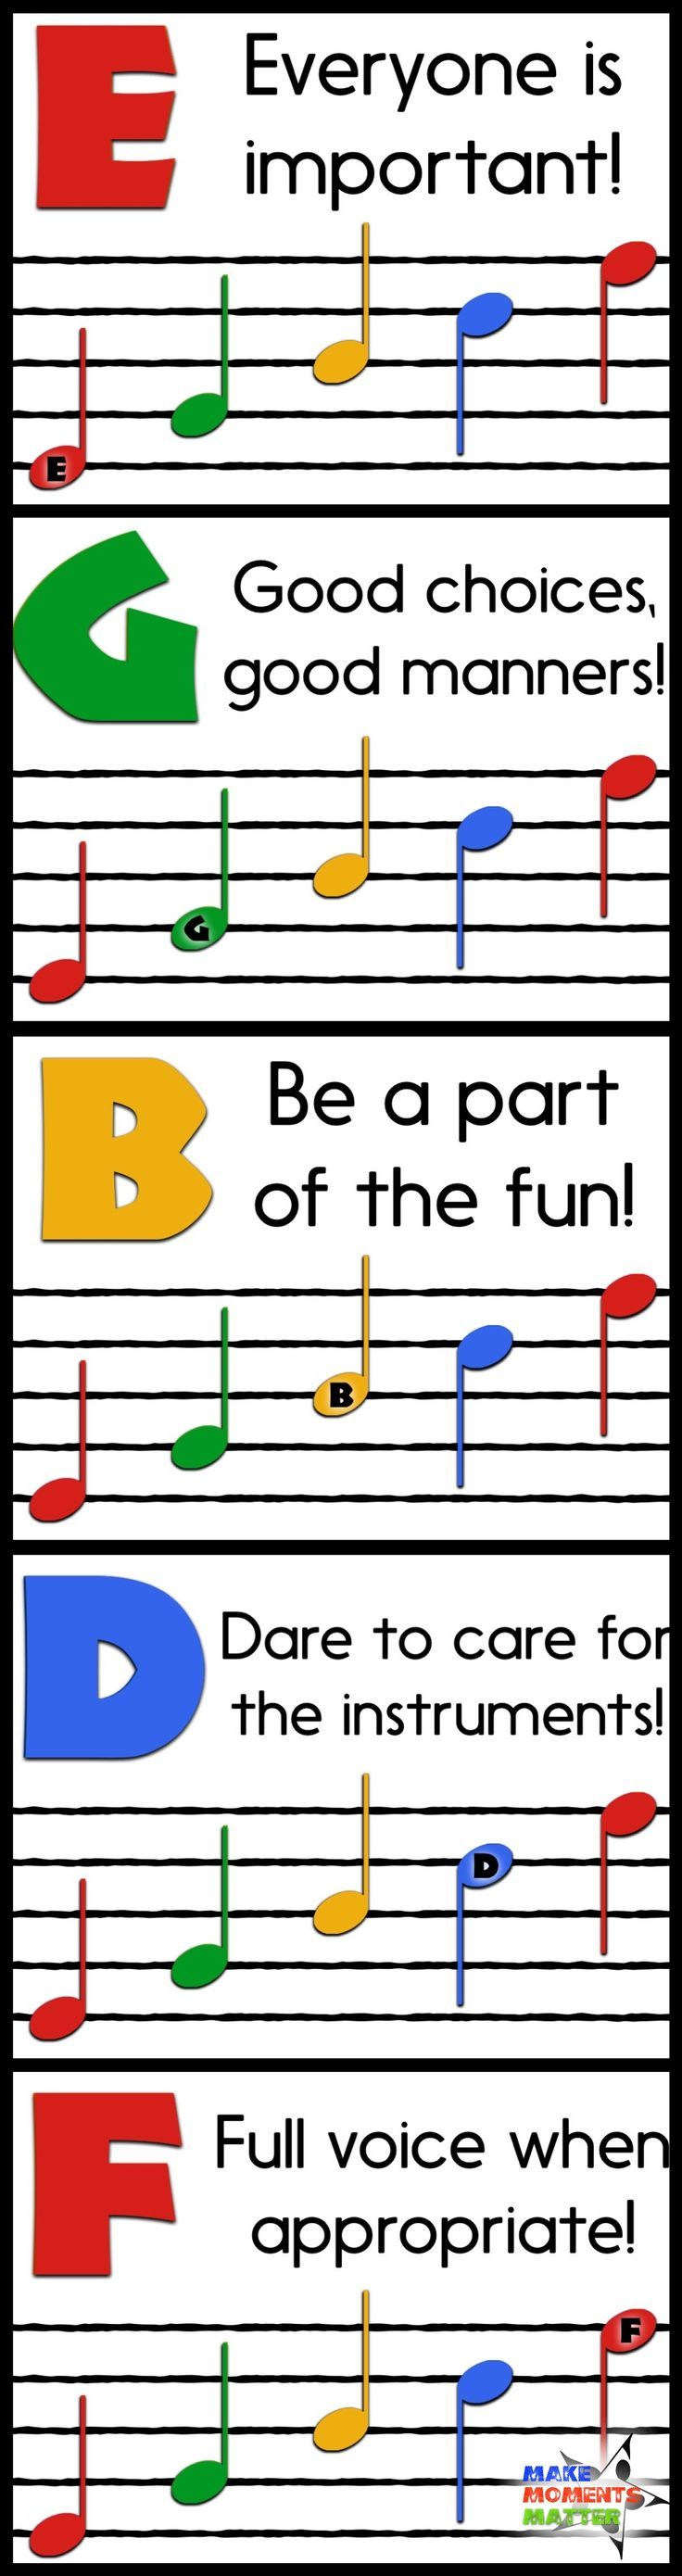 FREE Rules Posters for the Music Classroom based around EGBDF and FACE!